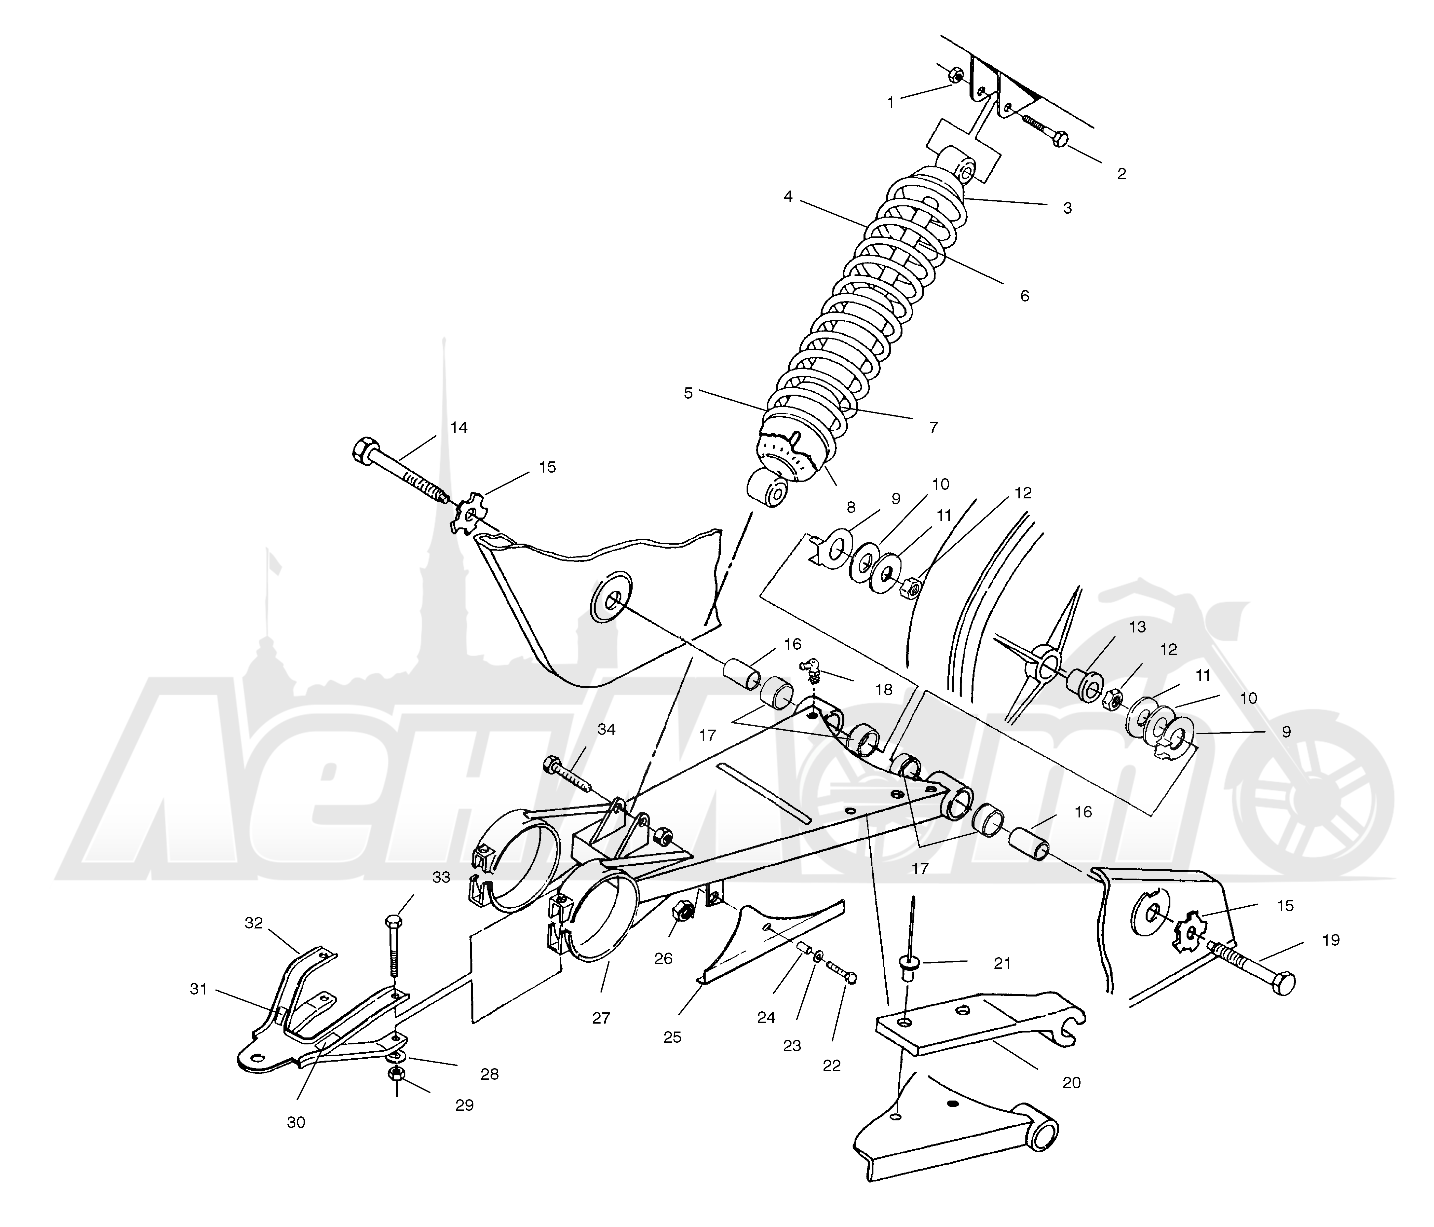 Diagram Polaris Magnum 425 4x4 Wiring Diagram Full